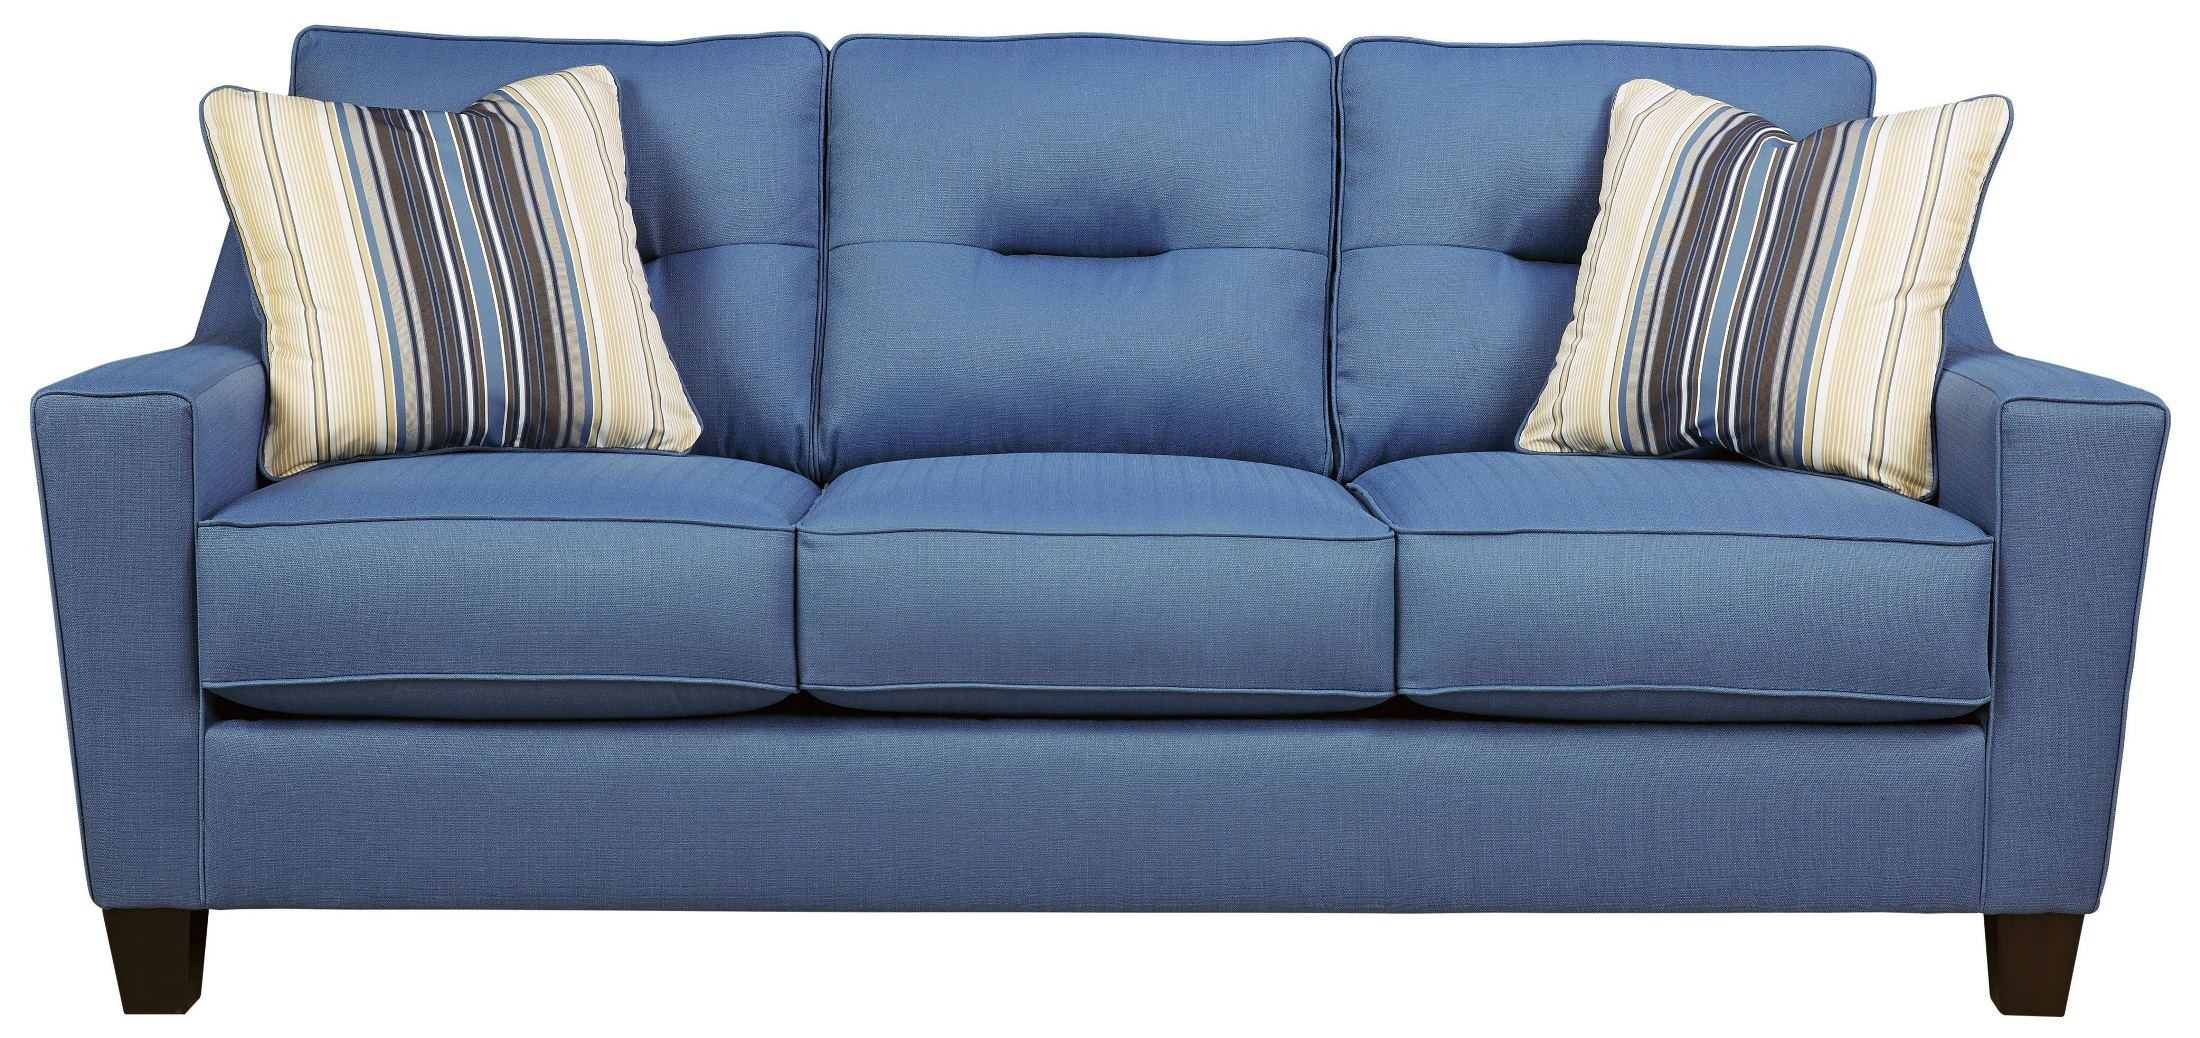 Forsan Nuvella Blue Queen Sofa Sleeper From Ashley